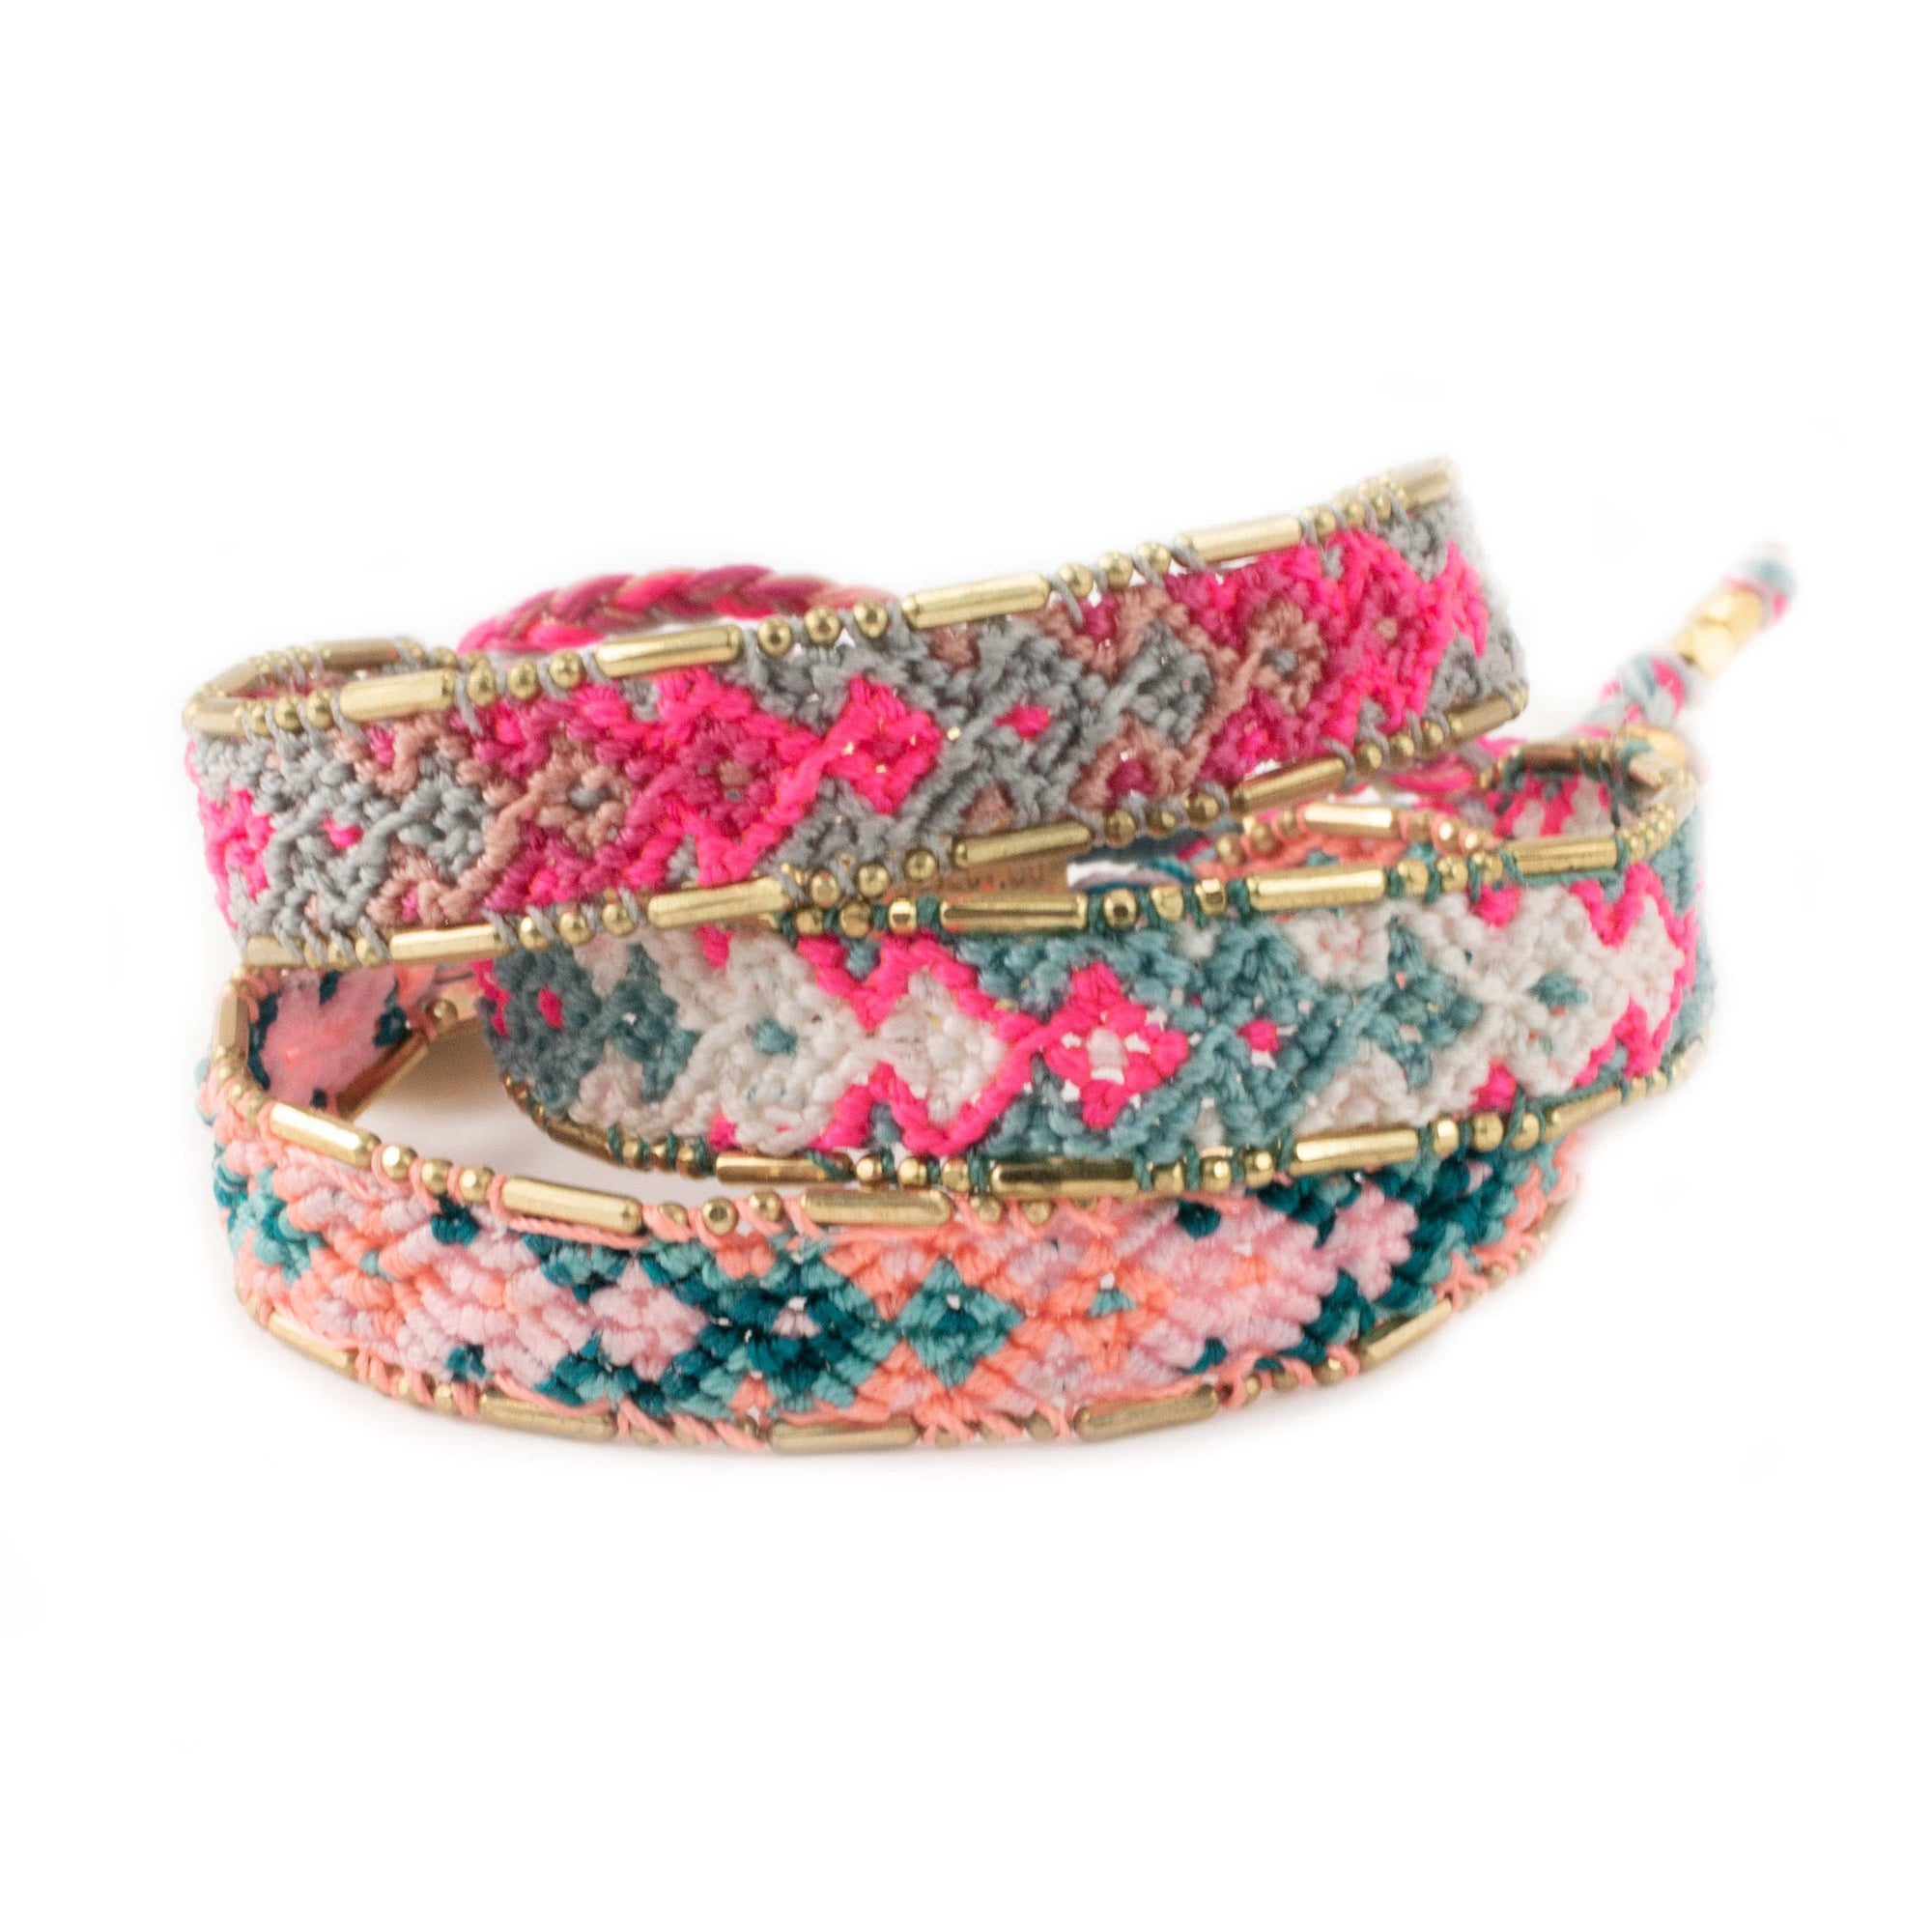 Bundle - Canyon Friendship Bracelets woven beaded Love Is Project bracelets made by female artisans in Bali, Indonesia. Creates jobs